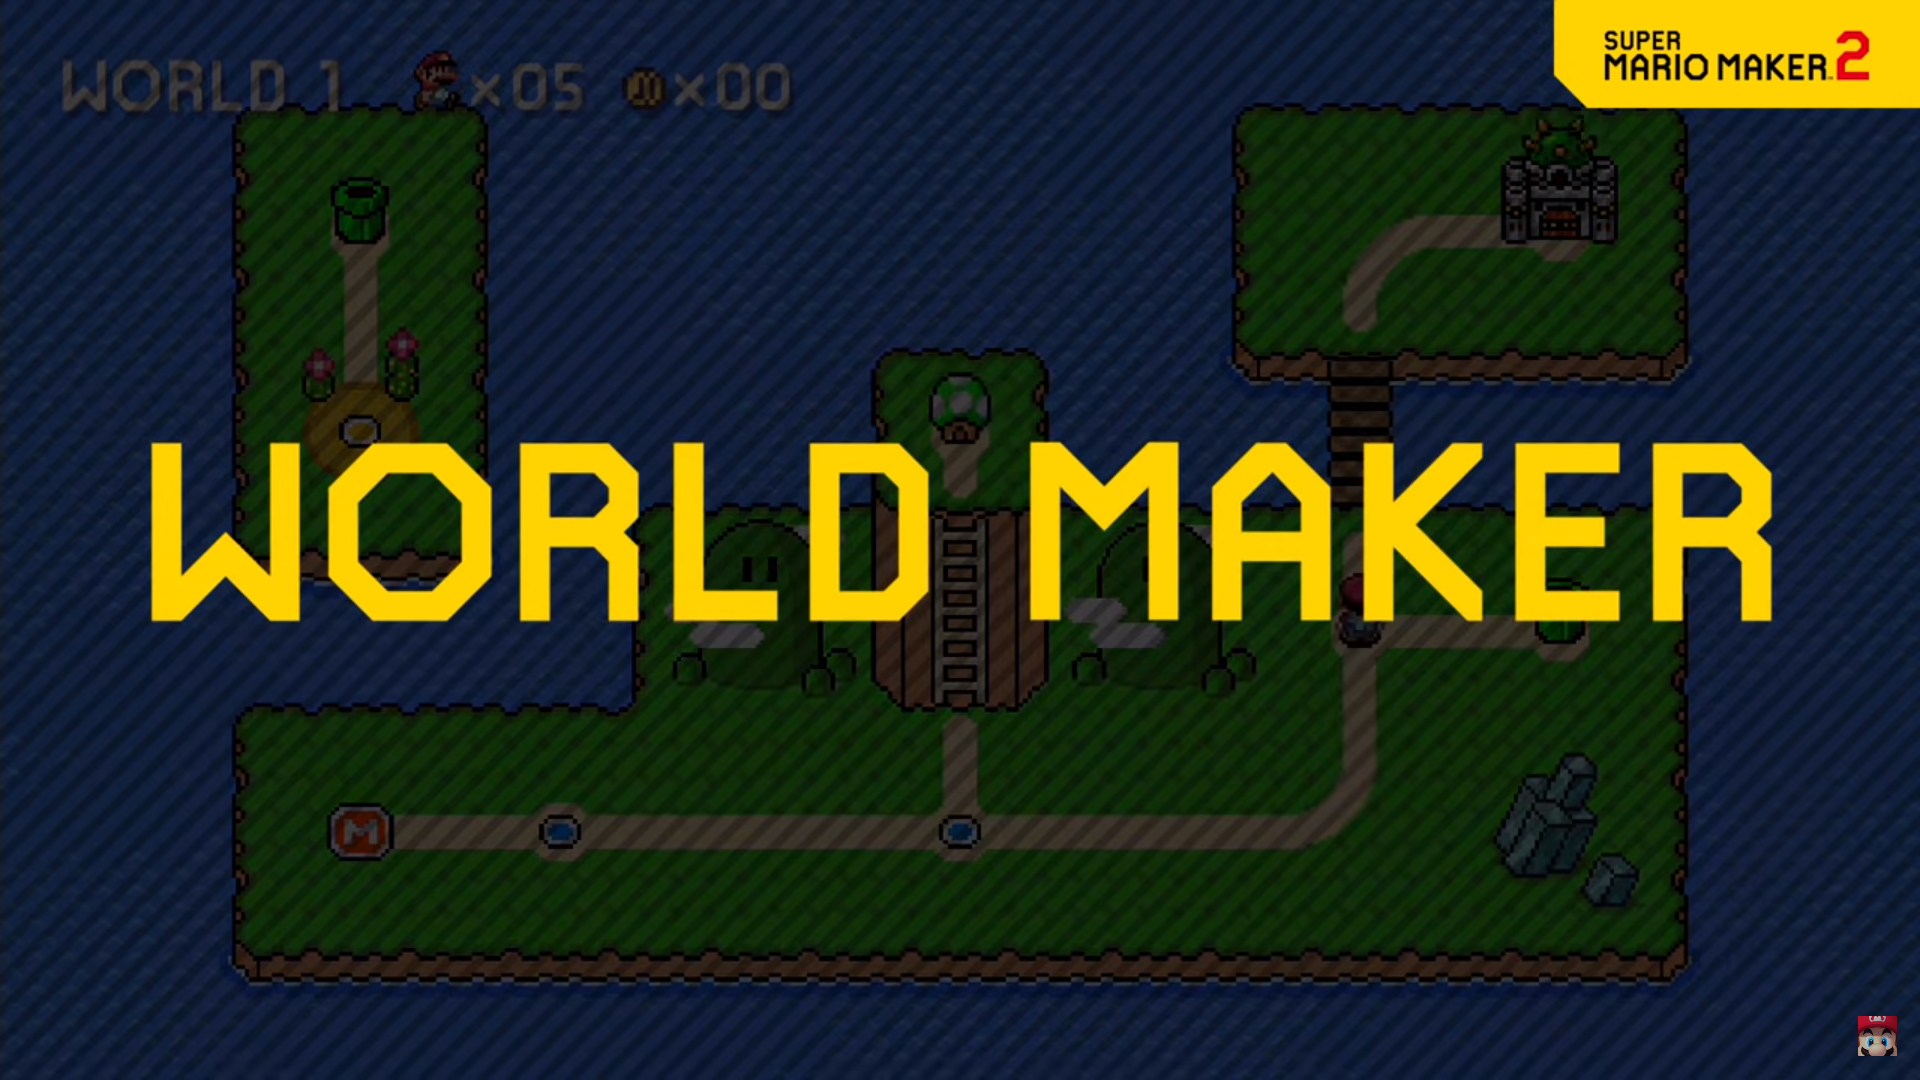 World Maker Super Mario Maker 2